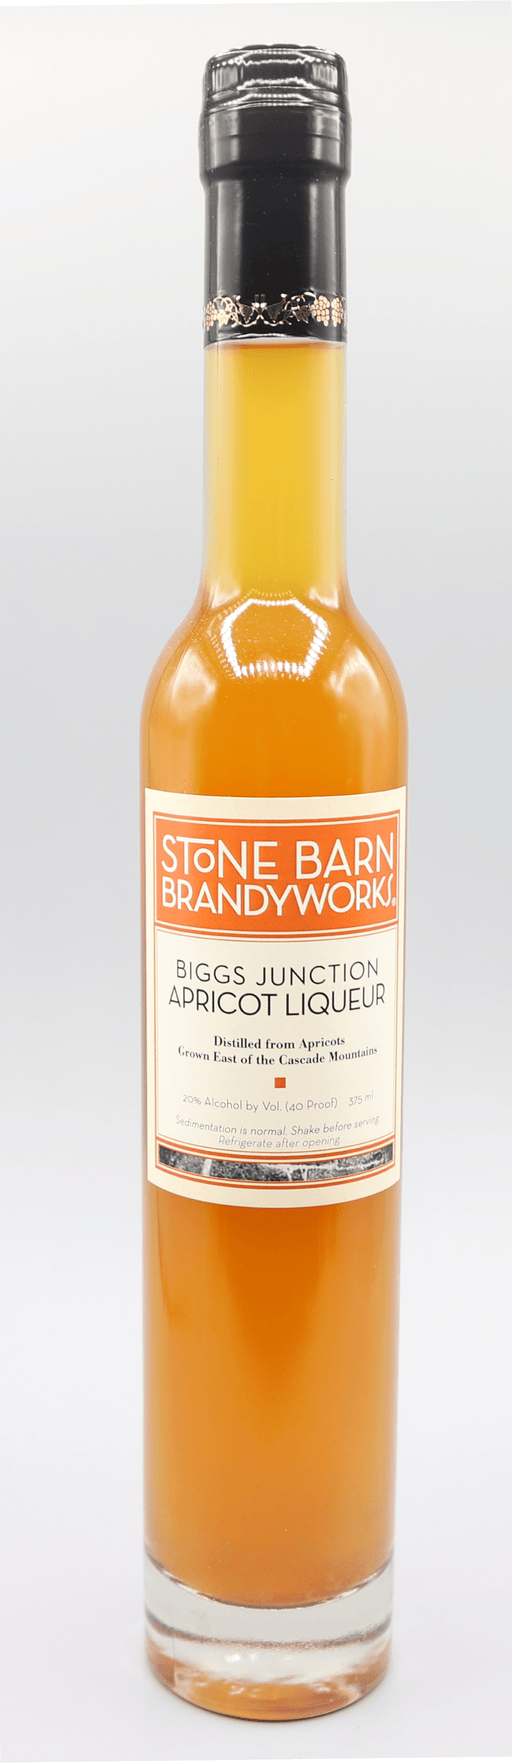 Biggs Junction Apricot Liqueur (375ml) - @ Your Door